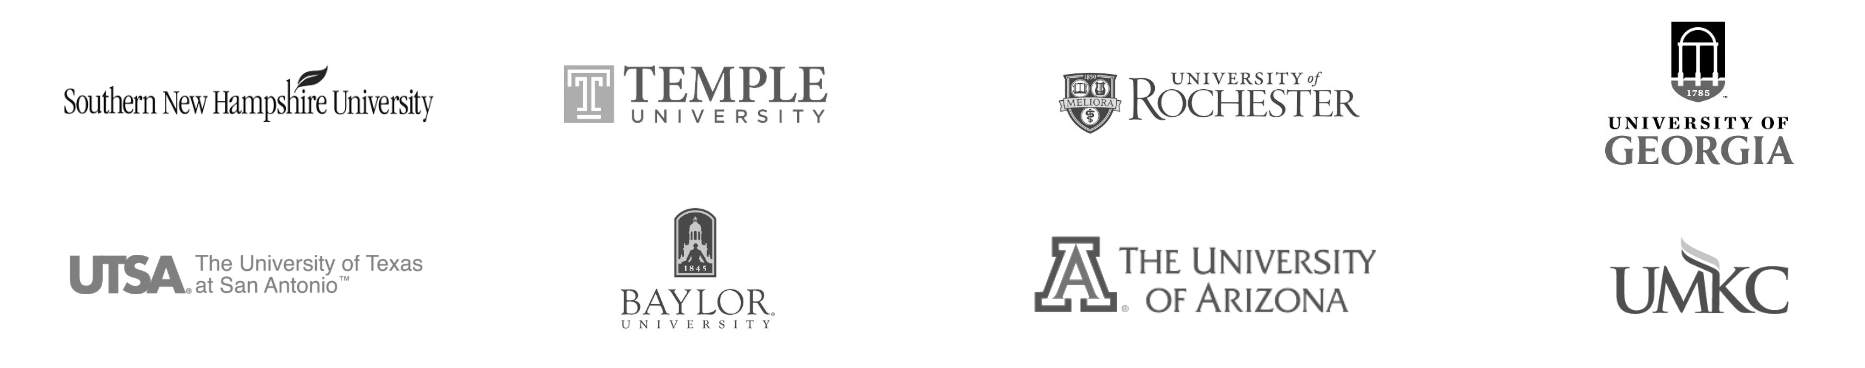 Jobscan University Logos for Website Landing Page